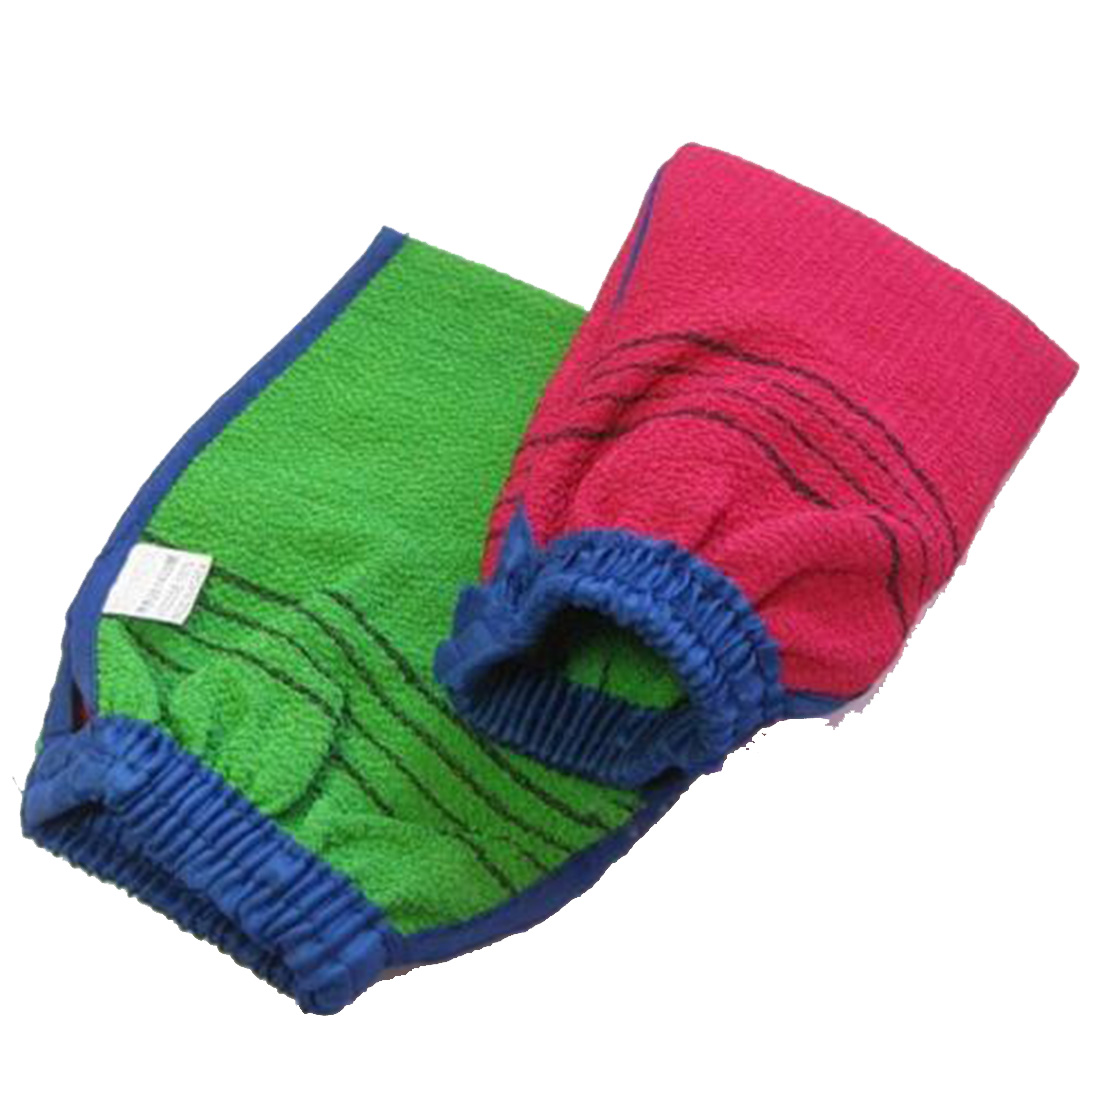 New Arrival 1 PC Random Color Shower Spa Exfoliator Two-sided Bath Glove Body Cleaning Scrub Mitt Rub Dead Skin Removal